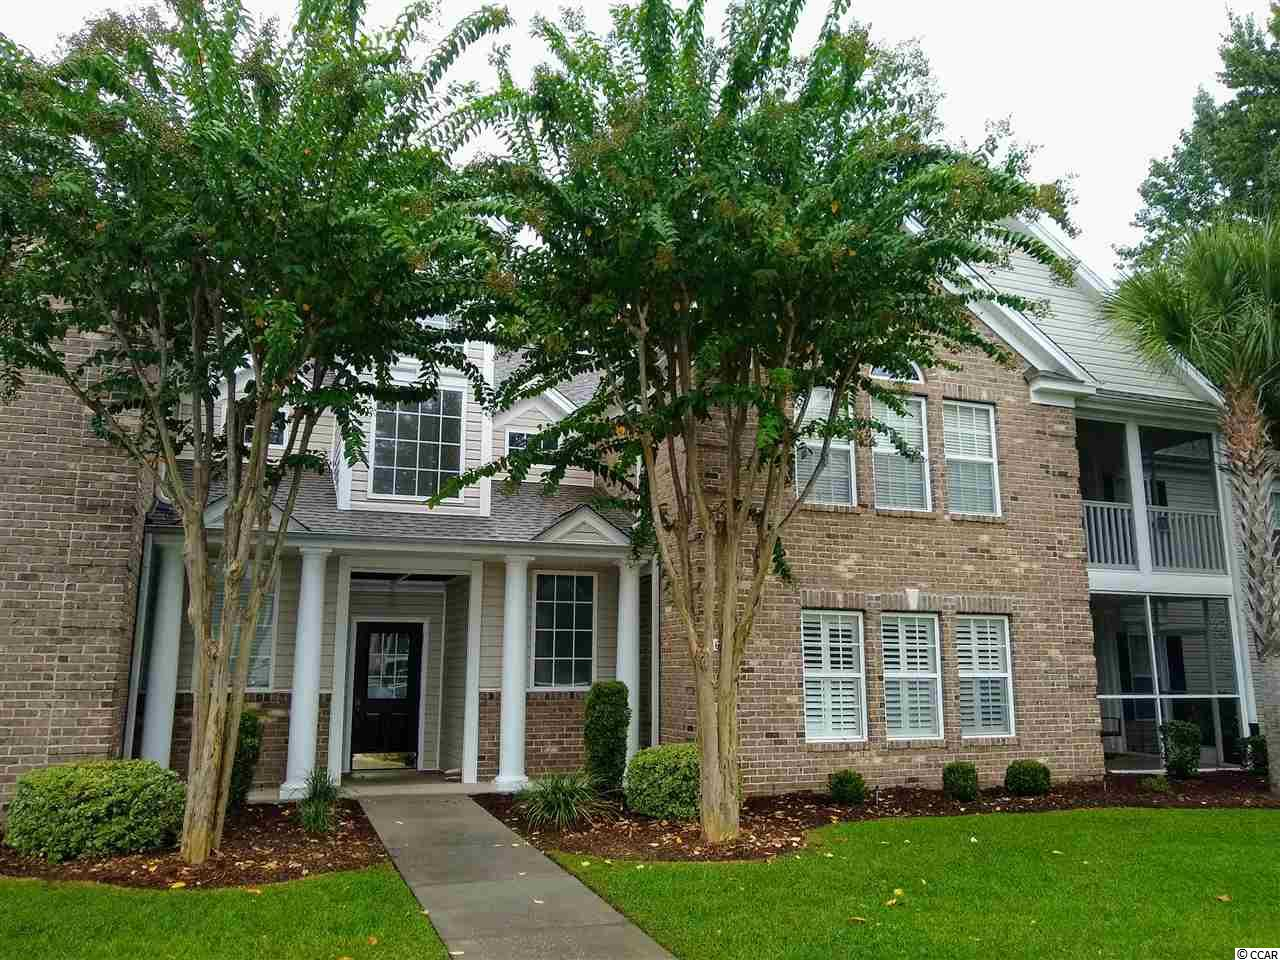 Meticulously maintained as a second home; this Light & Bright condo is located on the fifth hole of the award winning golf course of Wachesaw Plantation East; a gated community in Murrells Inlet. This home is all on one spacious level & is move in ready. Updates: NEW HVAC in NOV 2016 & Fresh, neutral paint throughout. Storage abounds in the large extra room just off the kitchen with plenty of space to keep things organized. You will not tire of the tranquil surroundings as you relax on your front screened porch, grill out on the back patio and take in the view of the 5th green and rolling fairway. The master suite boasts two walk-in closets, linen closet, dual sinks & glass door step-in shower. The 2nd bedroom has a french door for direct porch access. Ample size 3rd bedroom for your guests off the hallway as well as the second bath and laundry room (washer & dryer included). Wachesaw Plantation East is an established, gated community that offers SO much for such a LOW HOA fee. The list: 24-7 uniformed security, HTC Fiber Optics recently installed offering High speed cable & Internet. Surrounded by a beautiful, affordable golf course, walking /fitness trails throughout, nice pool, tennis courts and workout room. PRIME Location:1 mile to the famous Murrell's Inlet Marshwalk, or 1 mi. out the back gate to the marina on the Intercoastal waterway with public boat landings. Close to the pristine beaches of Huntington State Park, Brookgreen Gardens, Hospital and shopping.